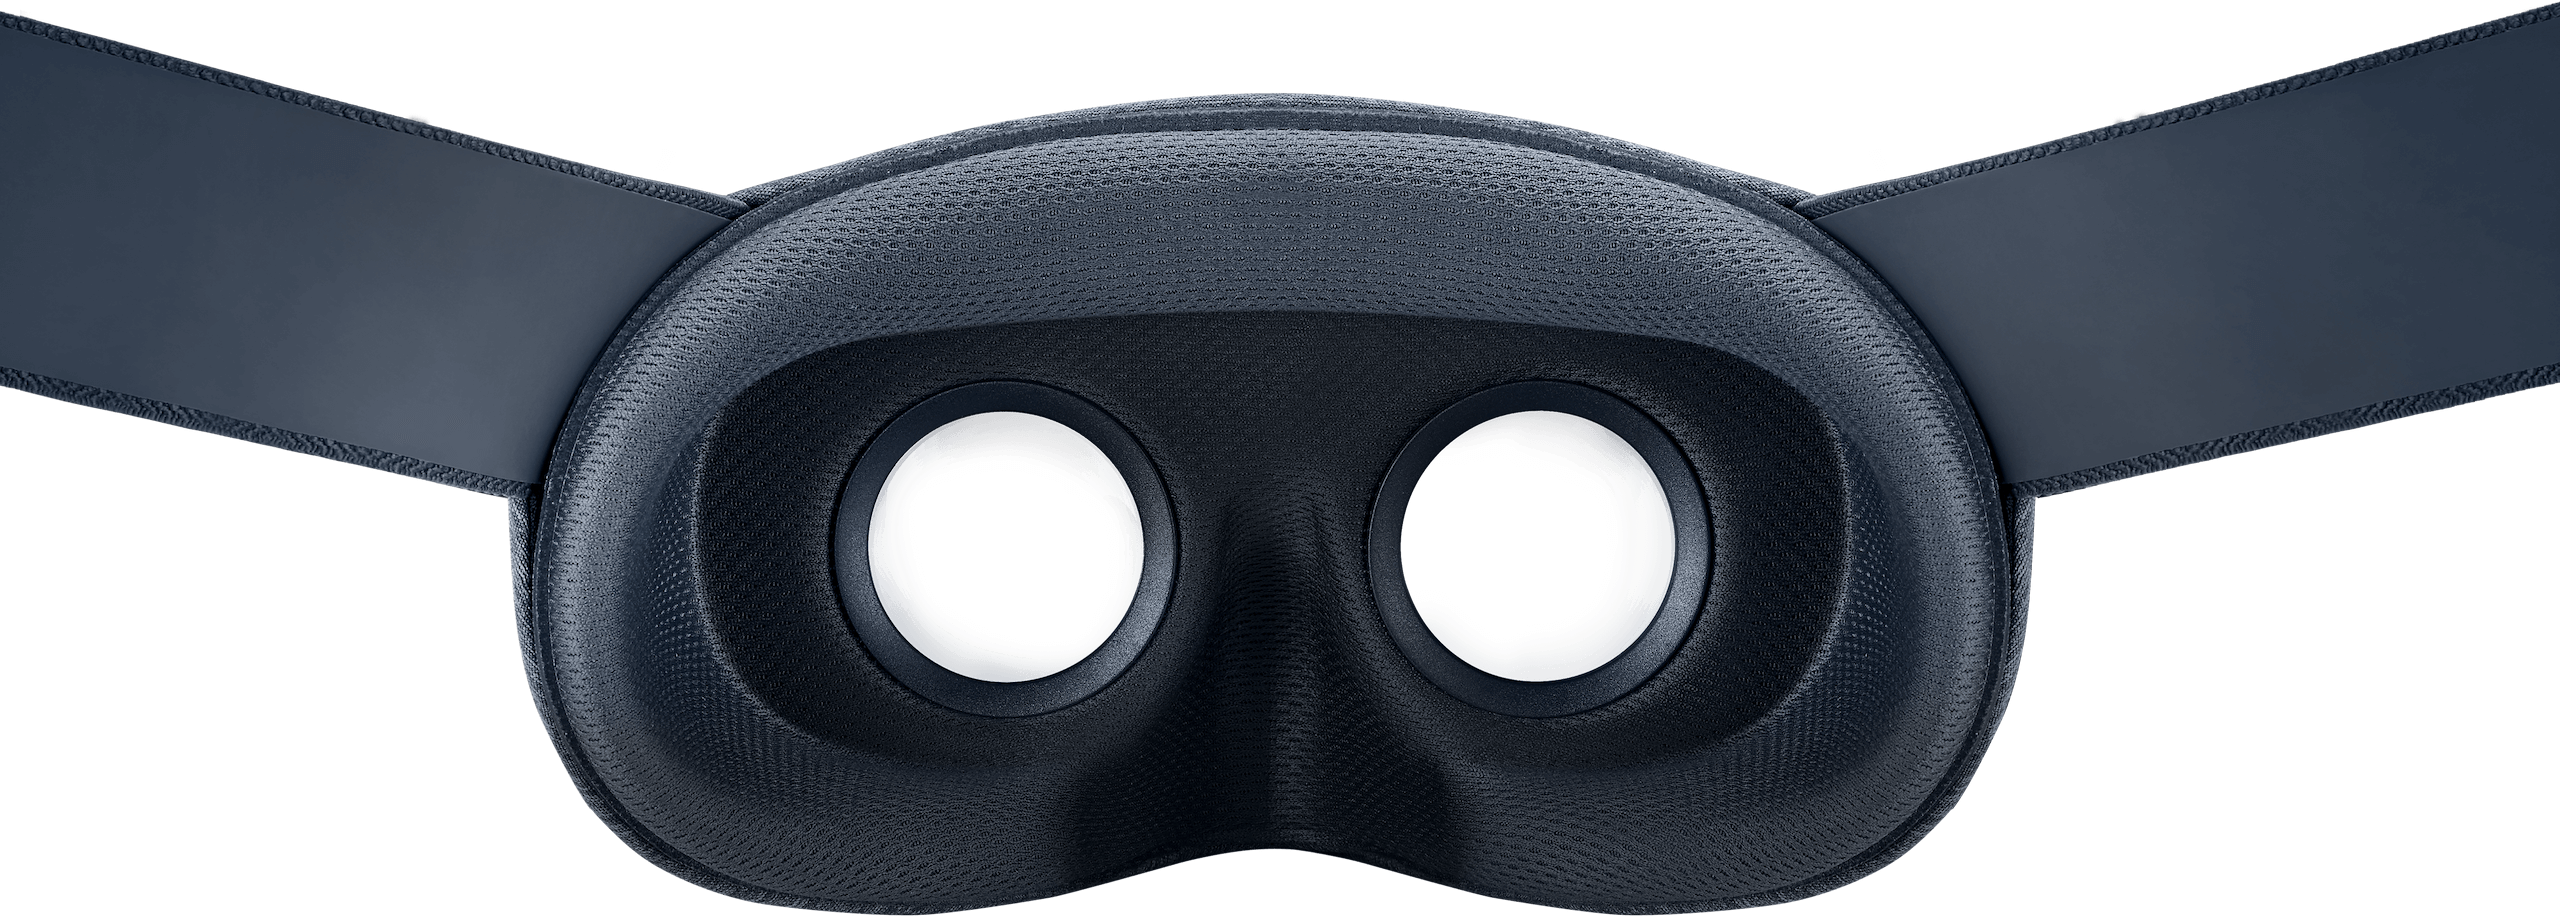 Image result for websites/global/products/tEJAZcdlMFKh2Lmt/v2/features/images/large/1x/animation/daydream_glasses.png